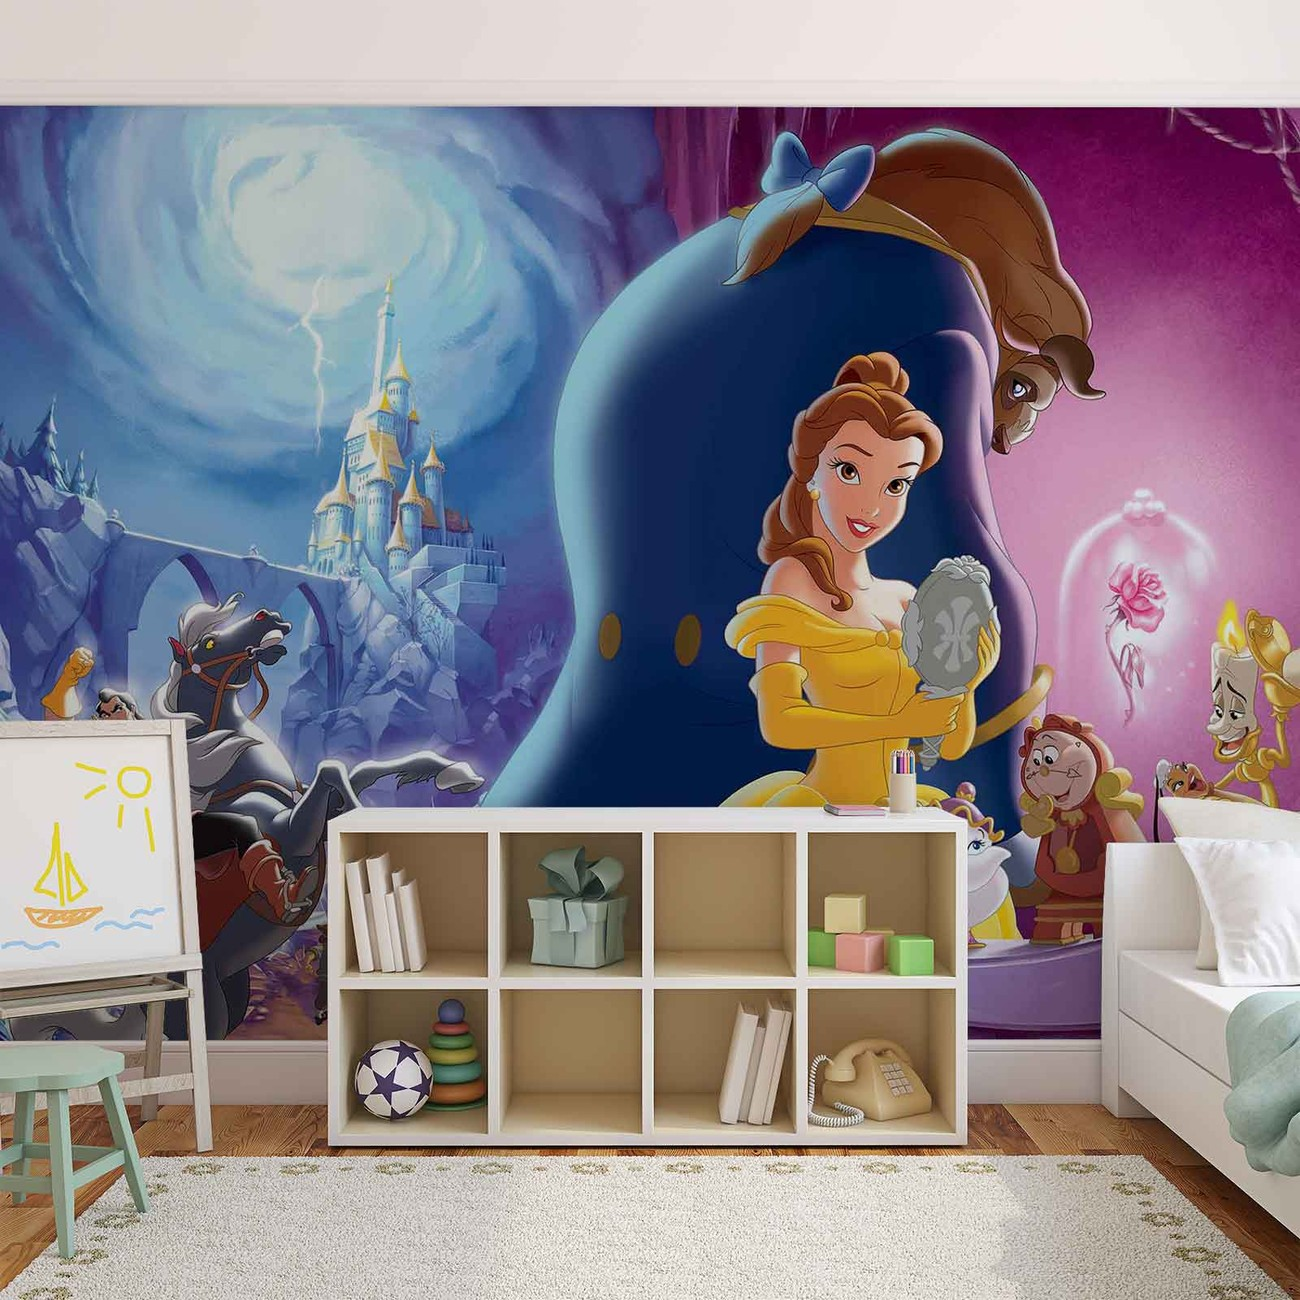 Disney princesses belle beauty beast wall paper mural for Disney wall mural